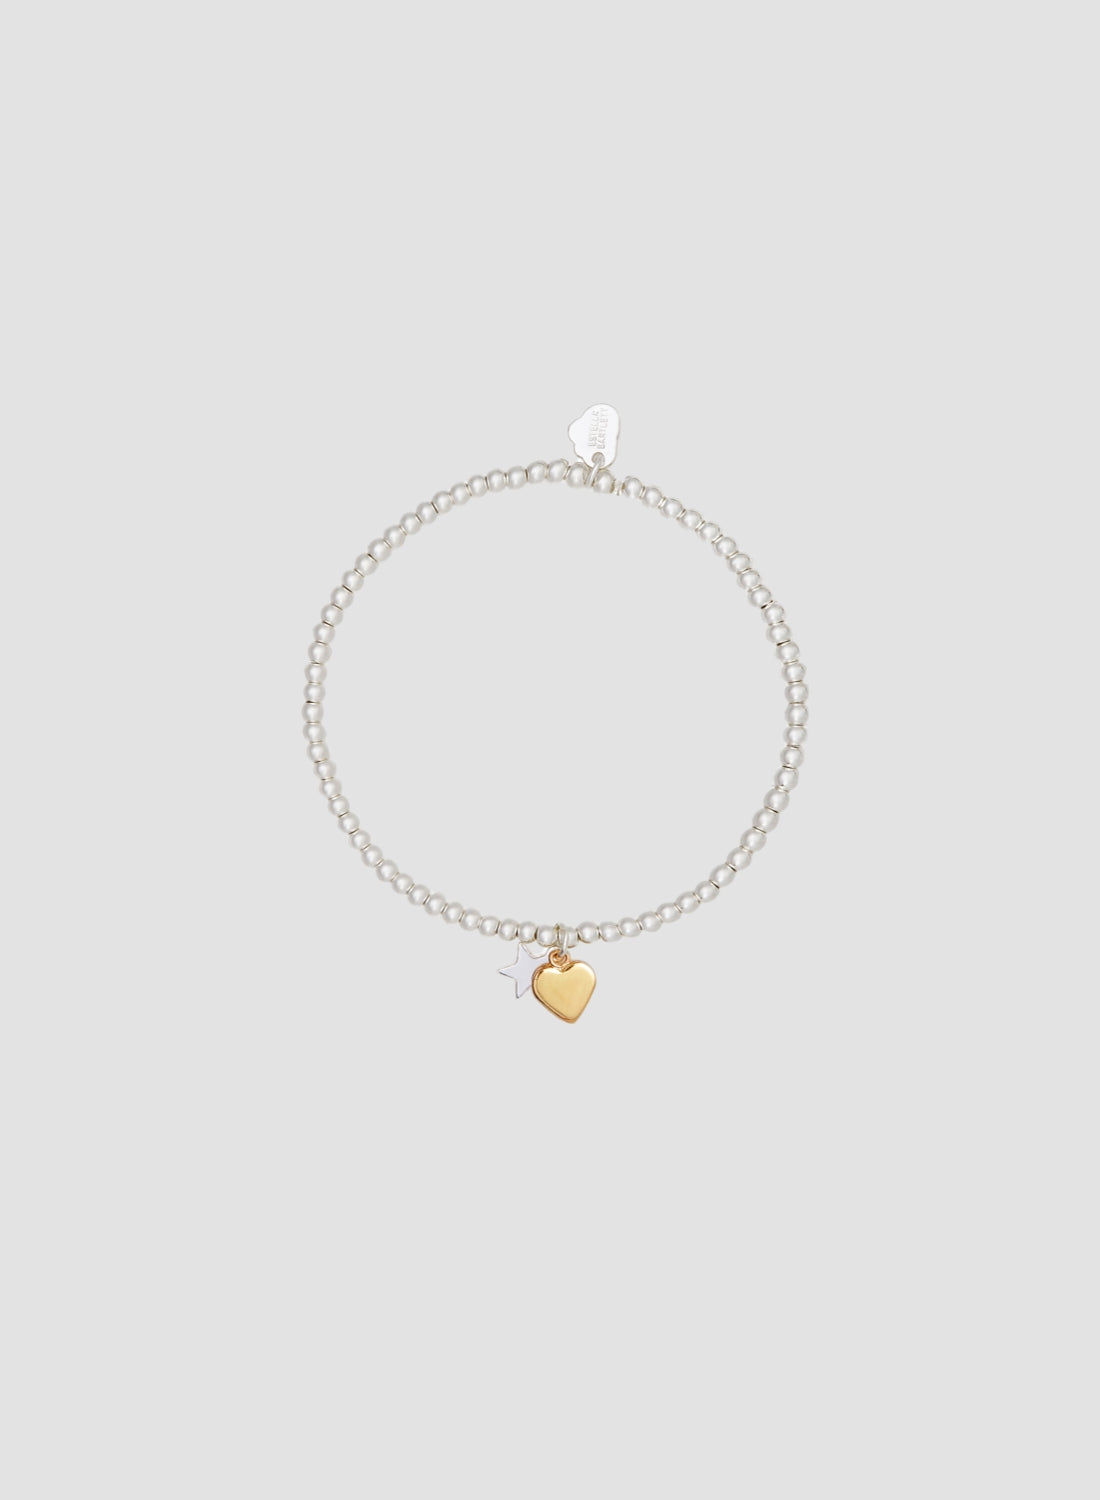 Gold Heart and Silver Star Bracelet